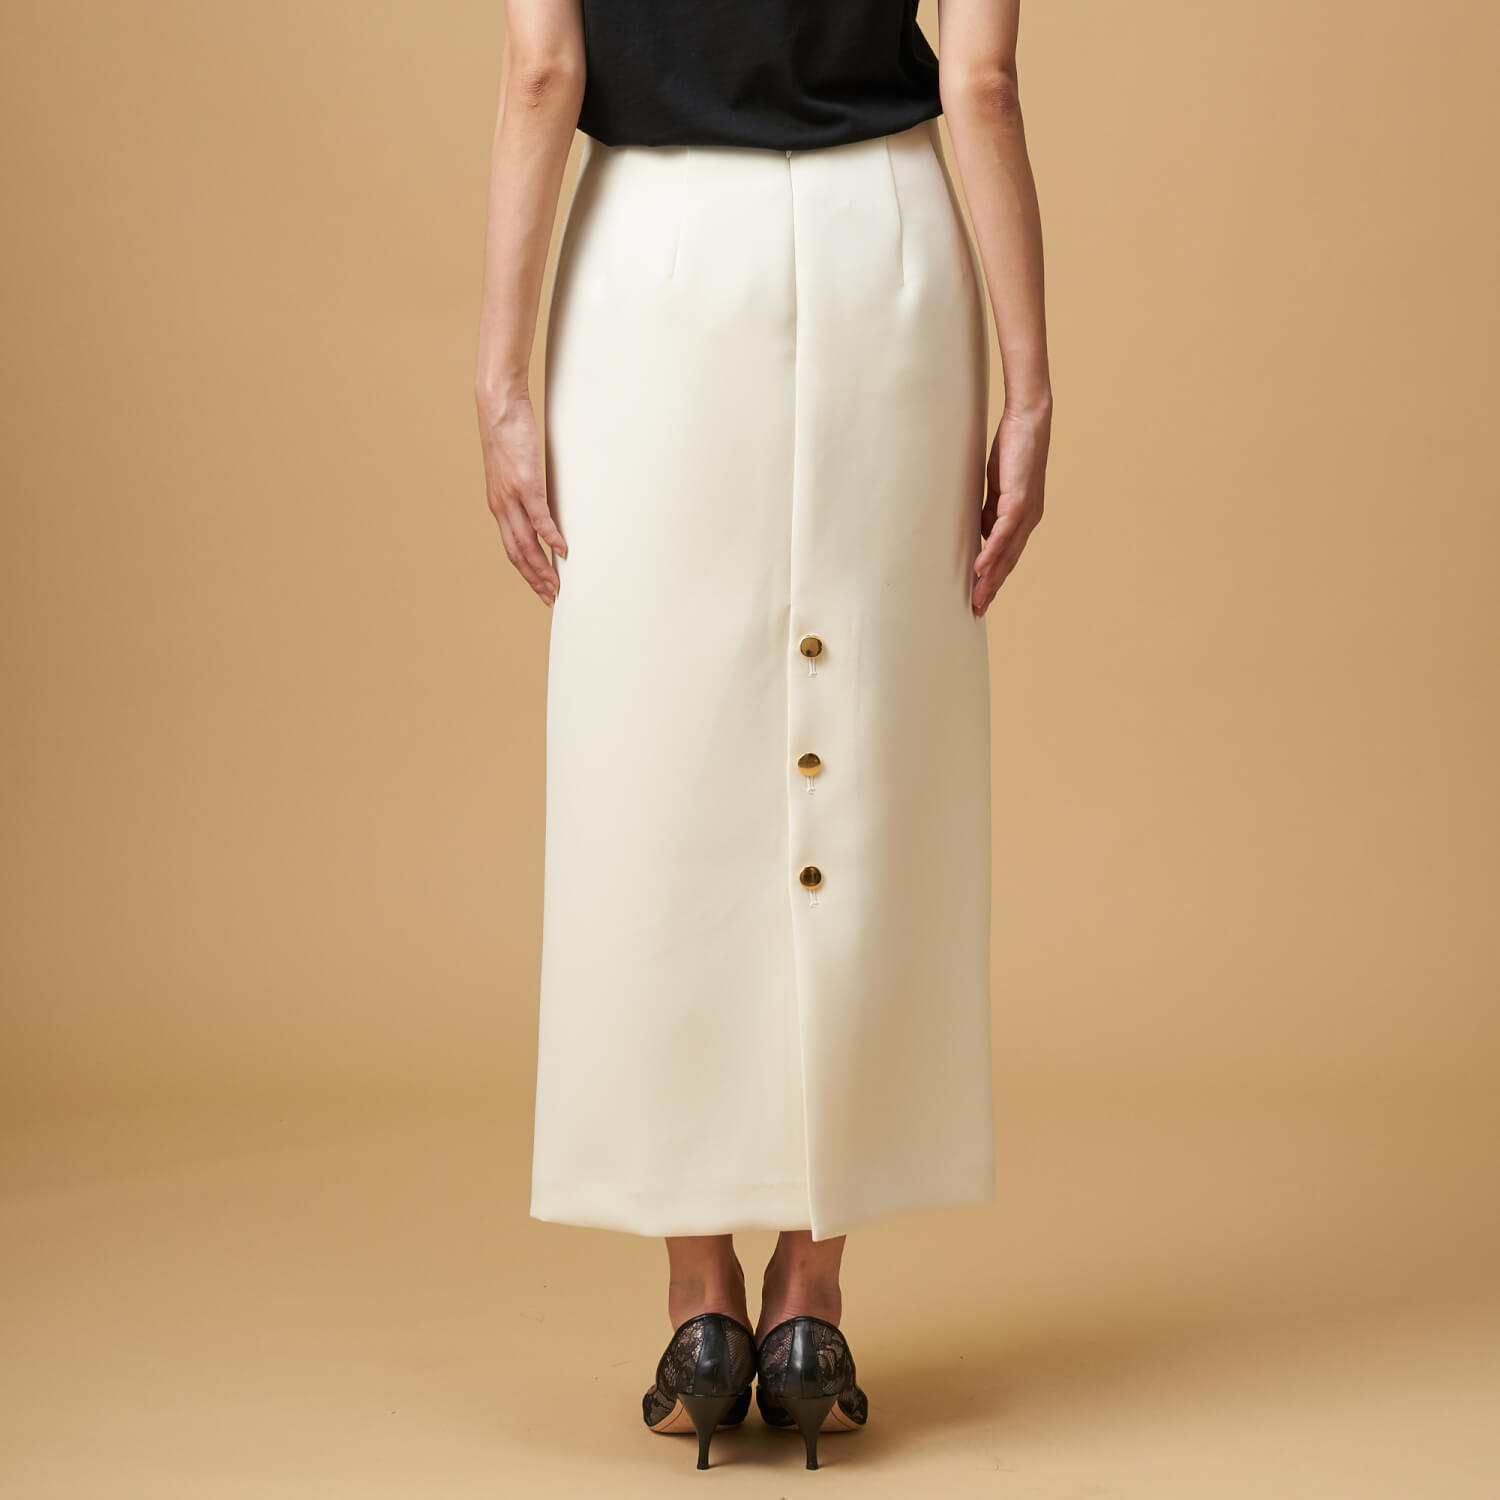 SKIRT 22,000円+tax Drawing Numbers